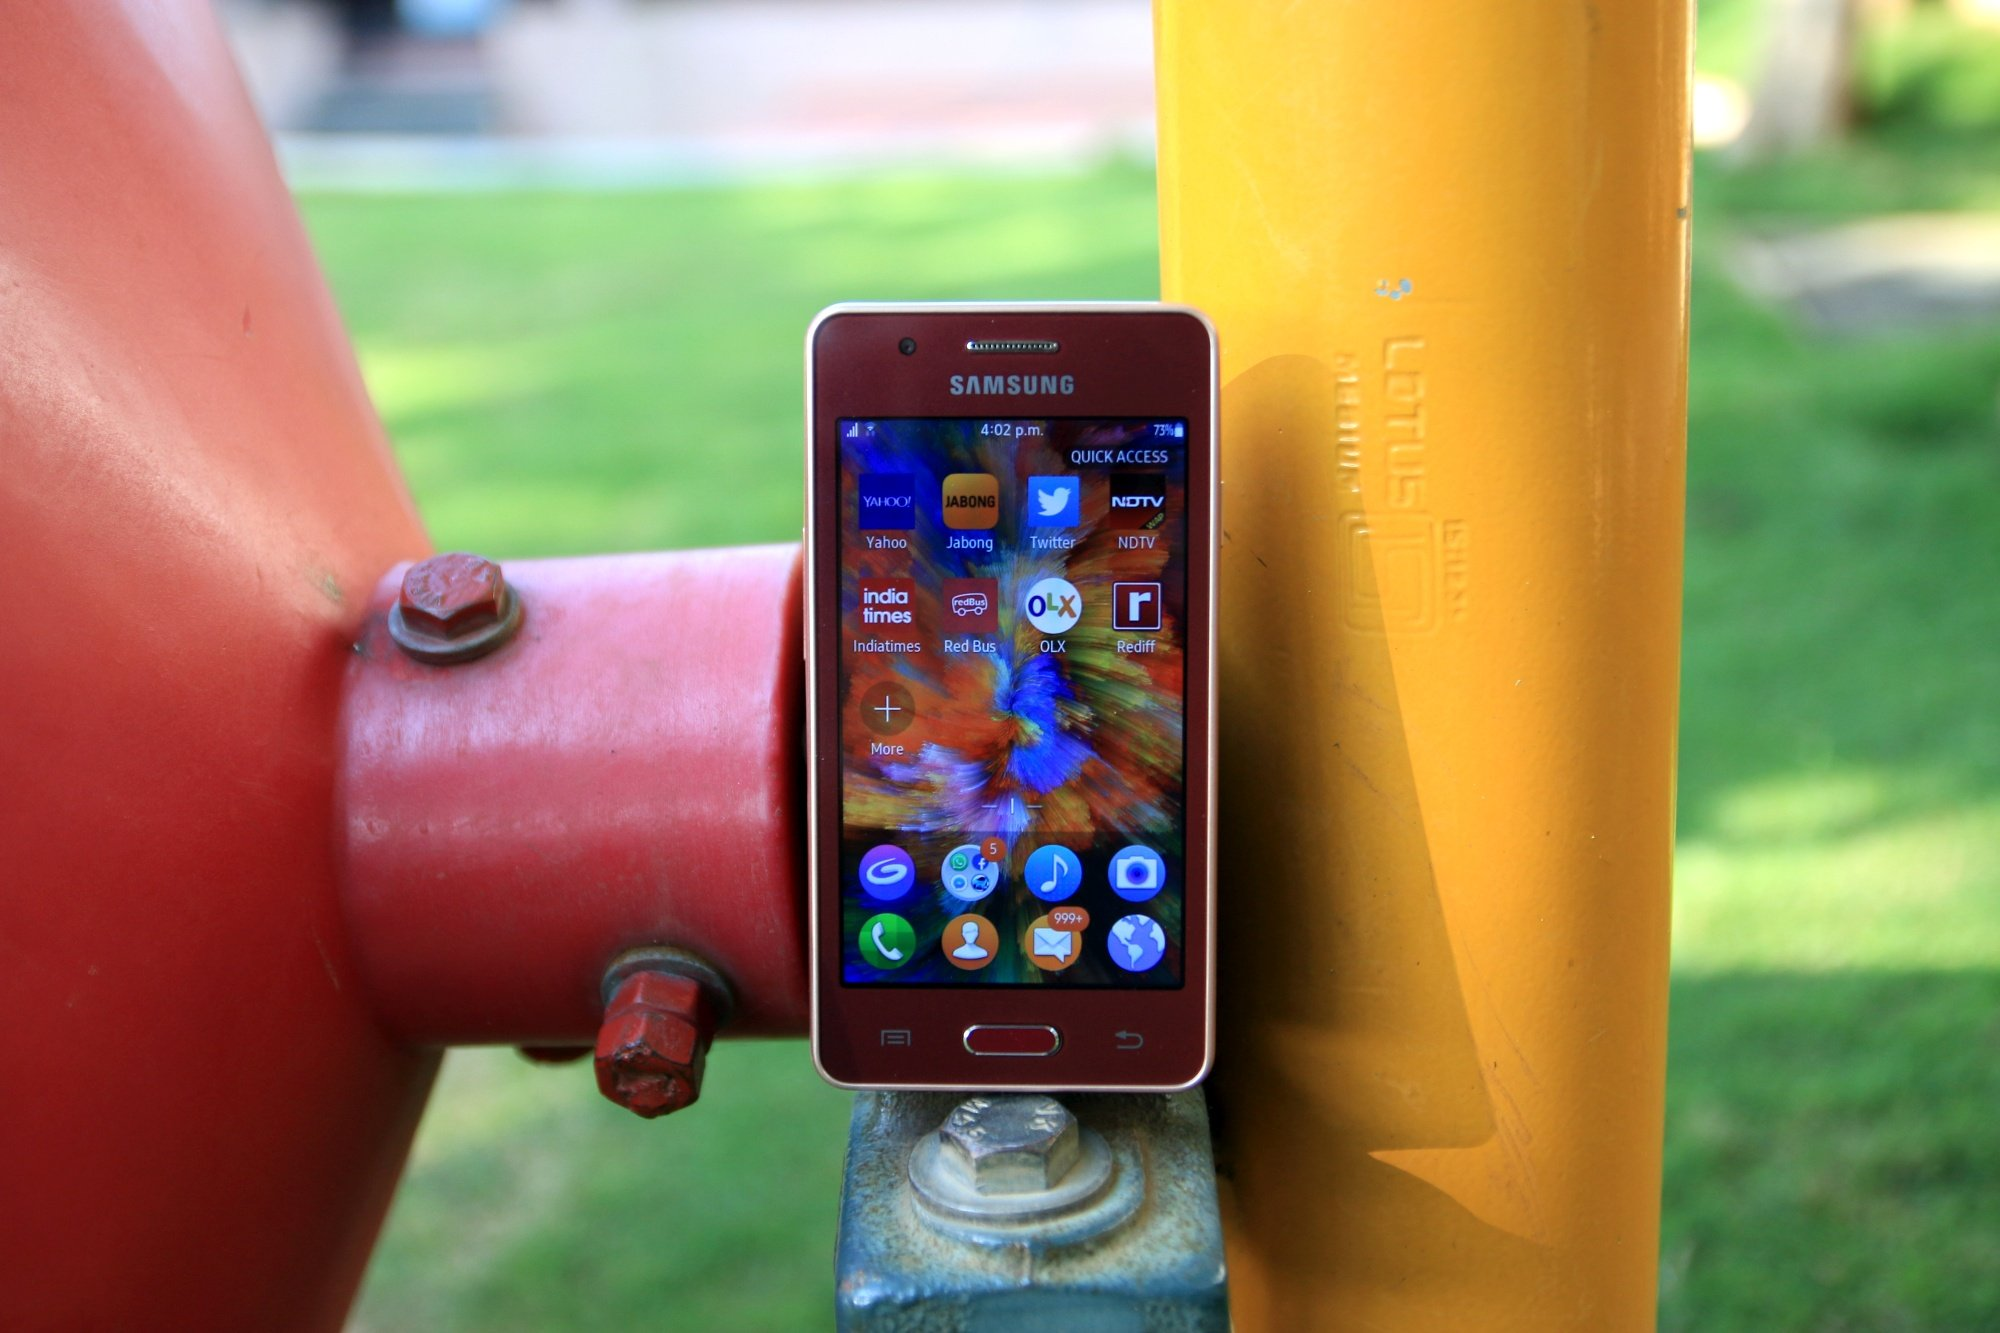 Samsung Z2 review: Strictly for first-time smartphone users